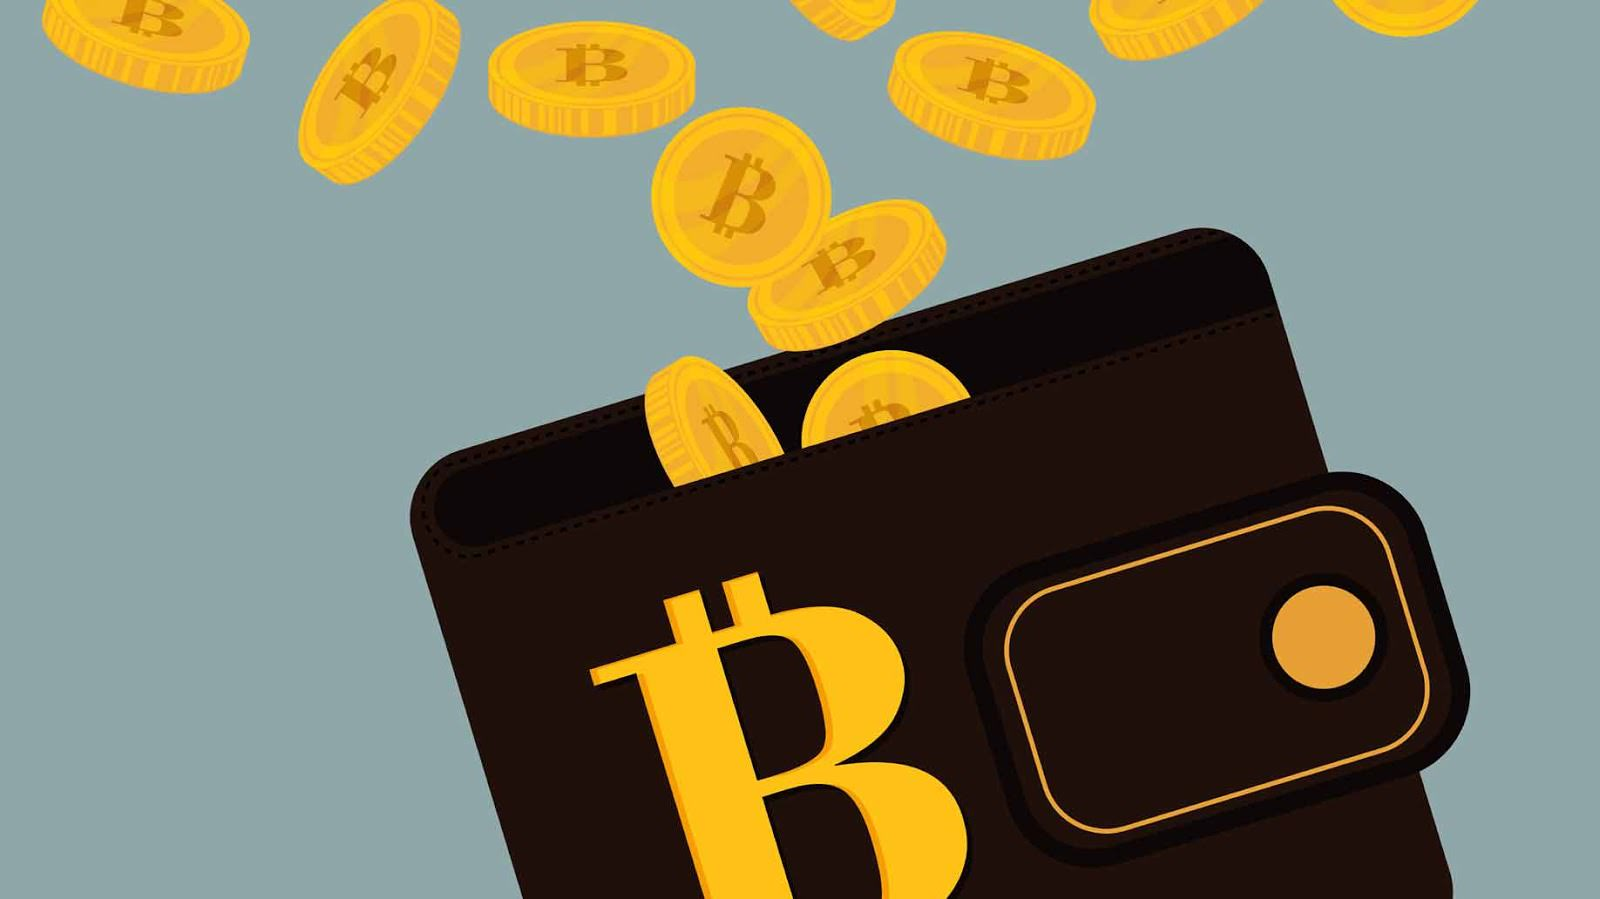 5 Categories Of Bitcoin Wallets You Need To Know